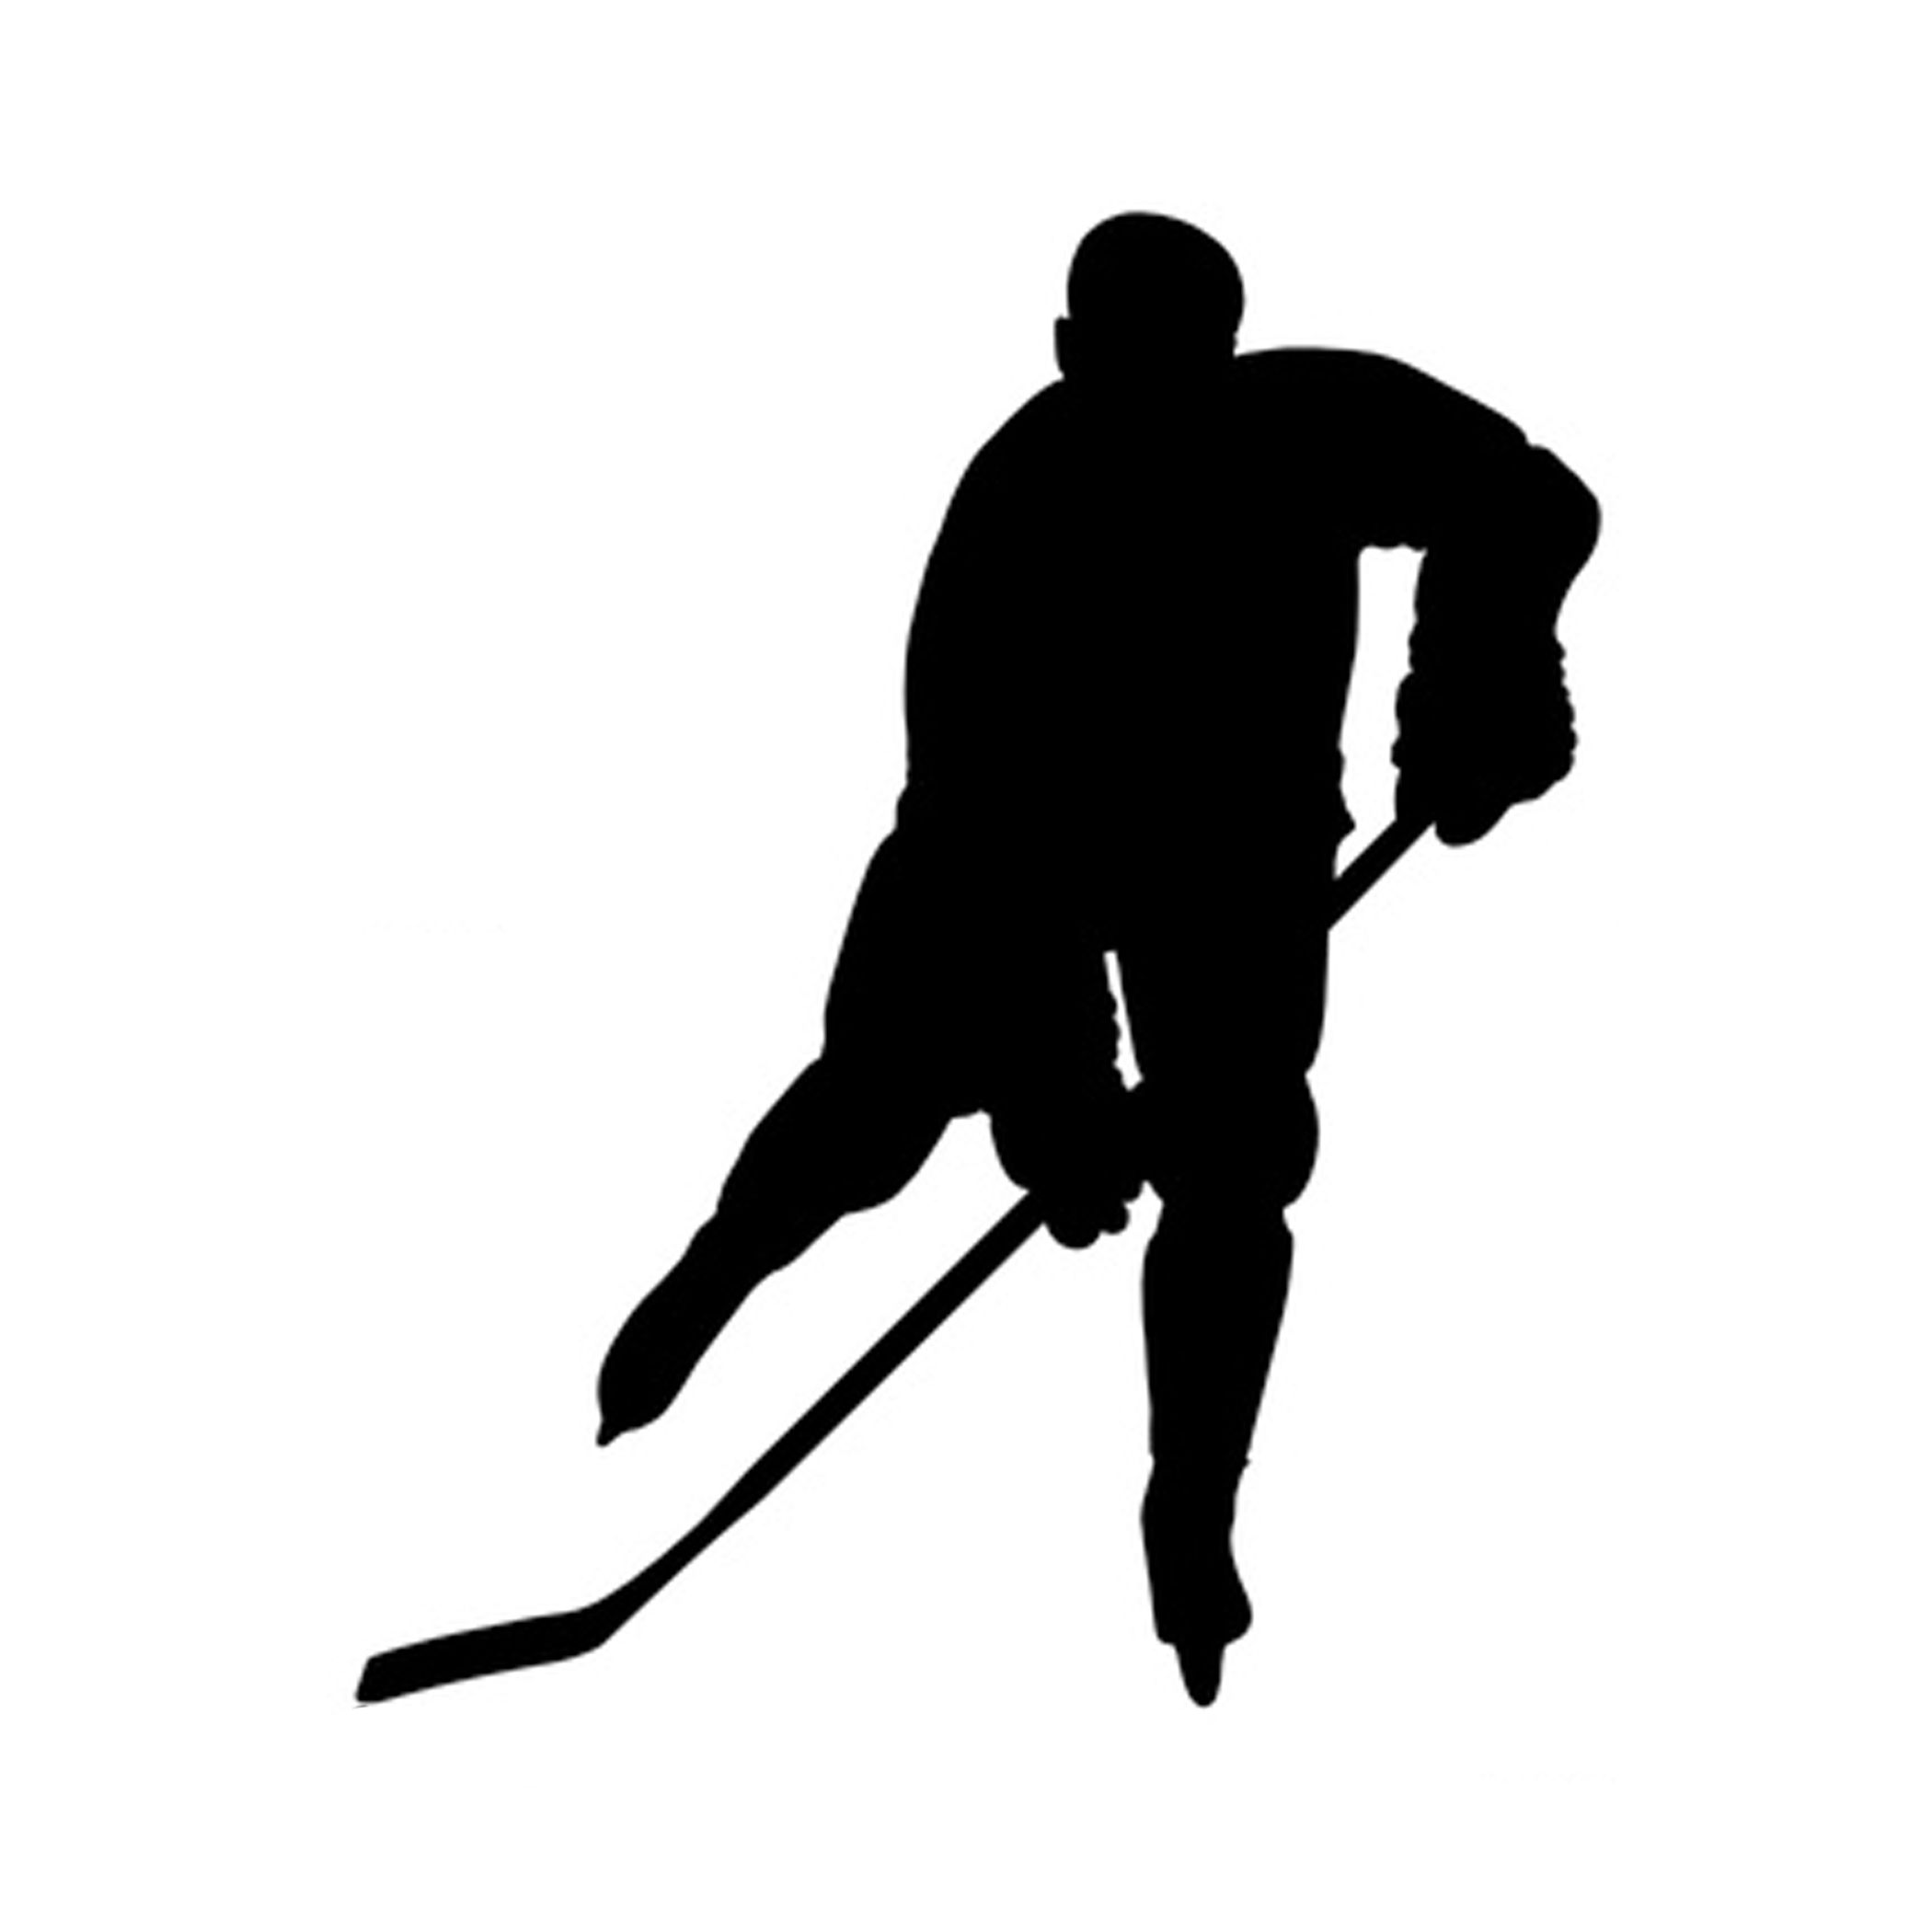 Free Svg File Download Hockey Player Beaoriginal Blog Svg Free Files Hockey Silhouette Clip Art